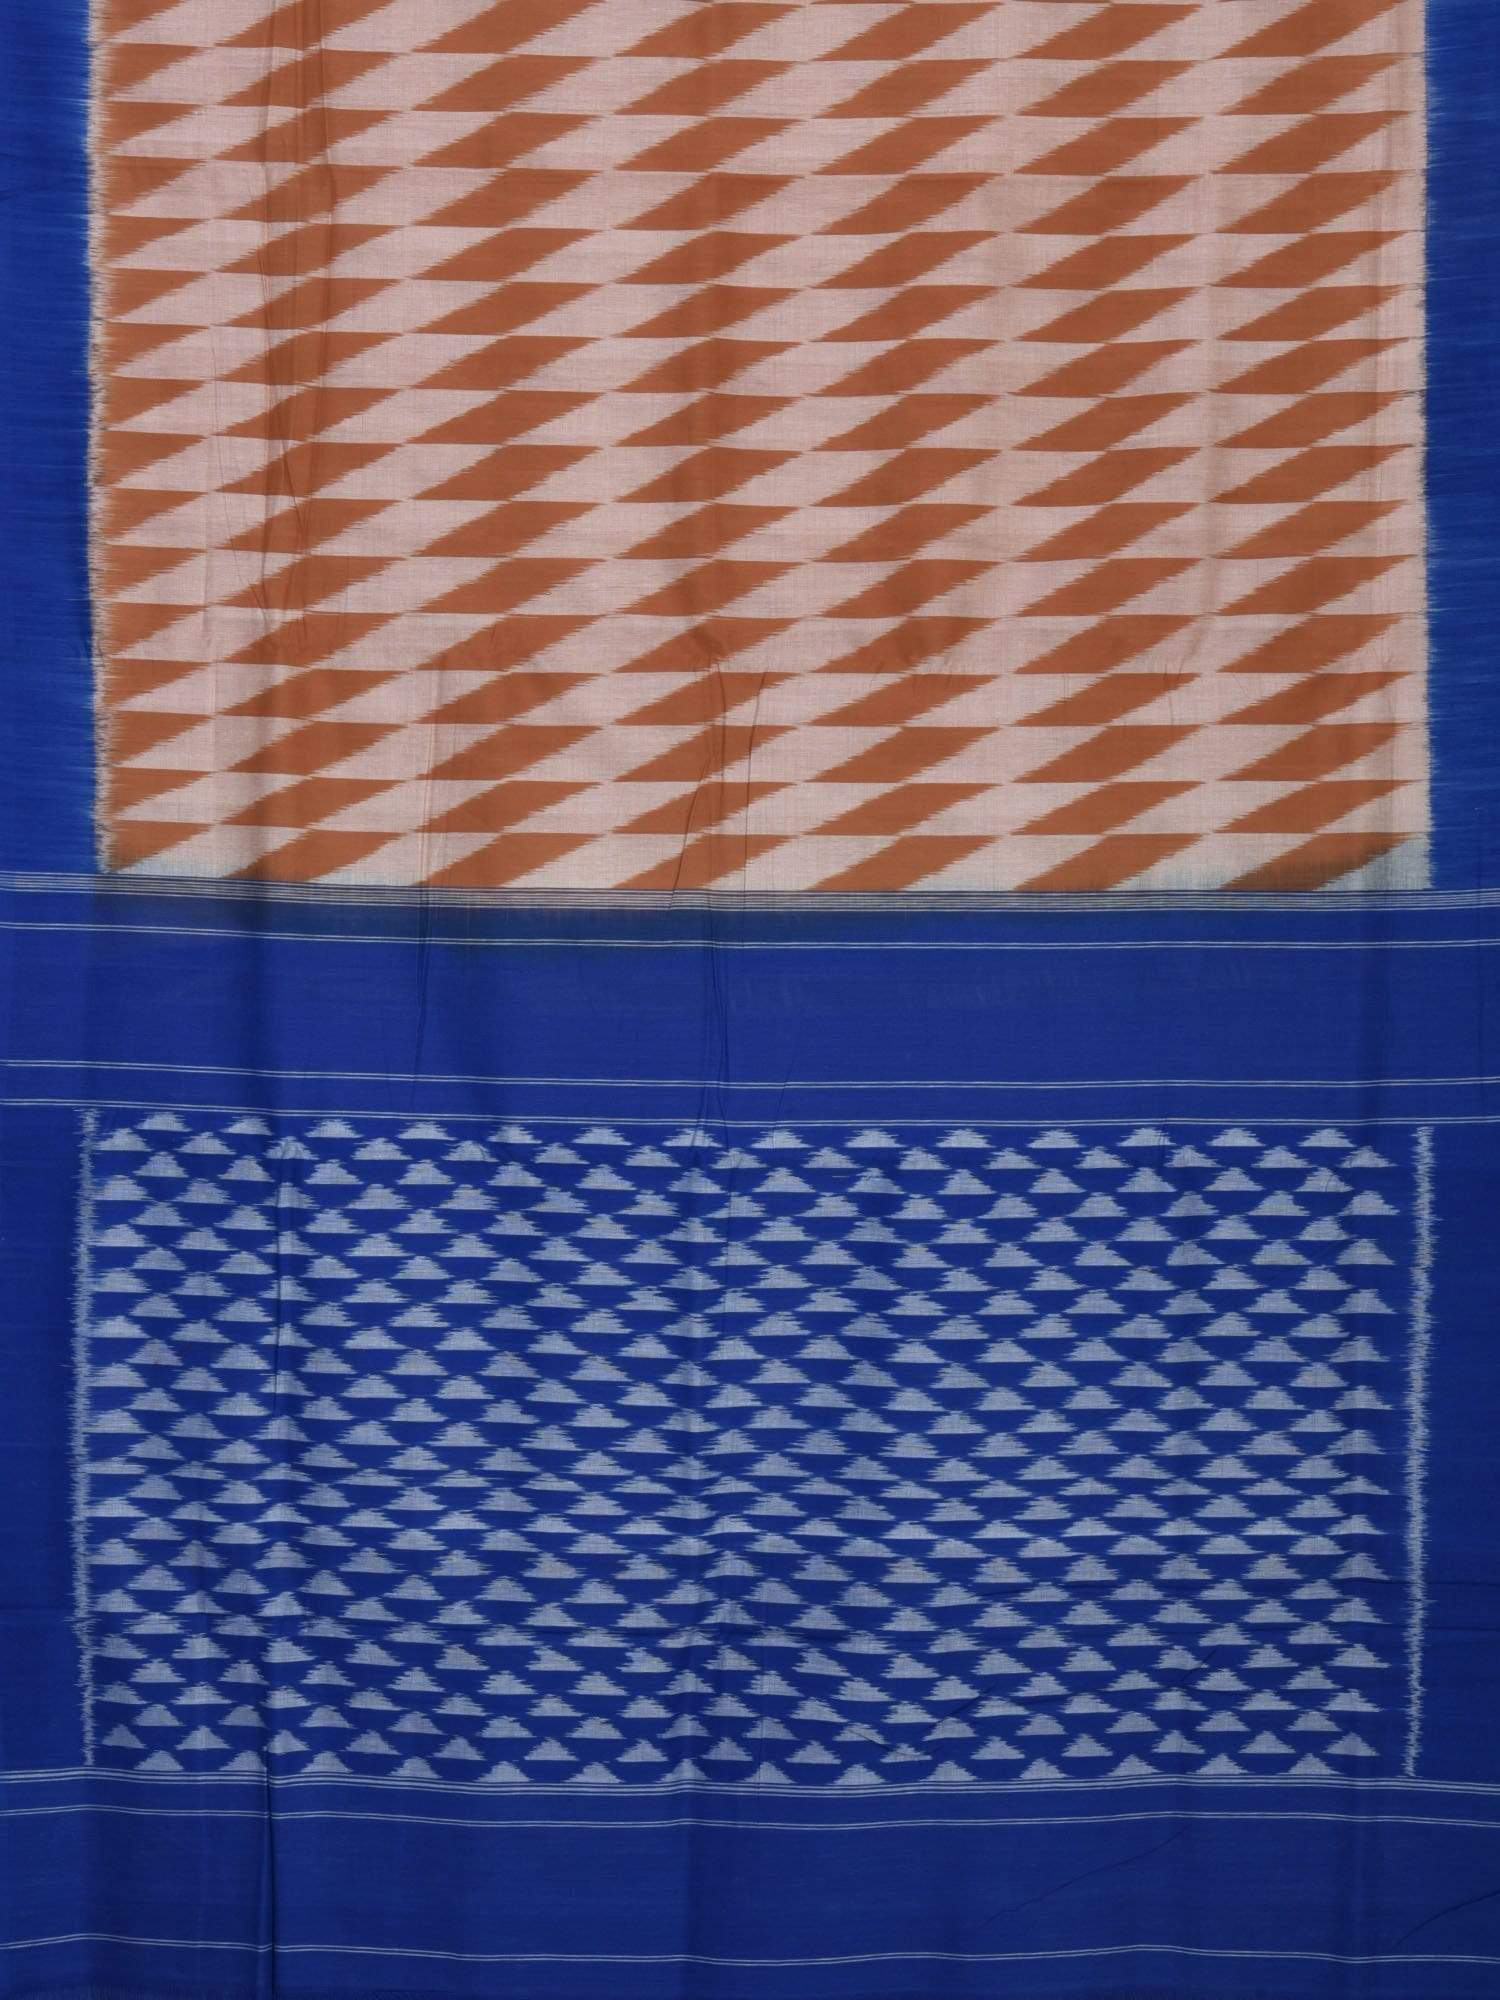 Light Brown and Blue Pochampally Ikat Cotton Handloom Saree with Triangle Pallu Design i0428